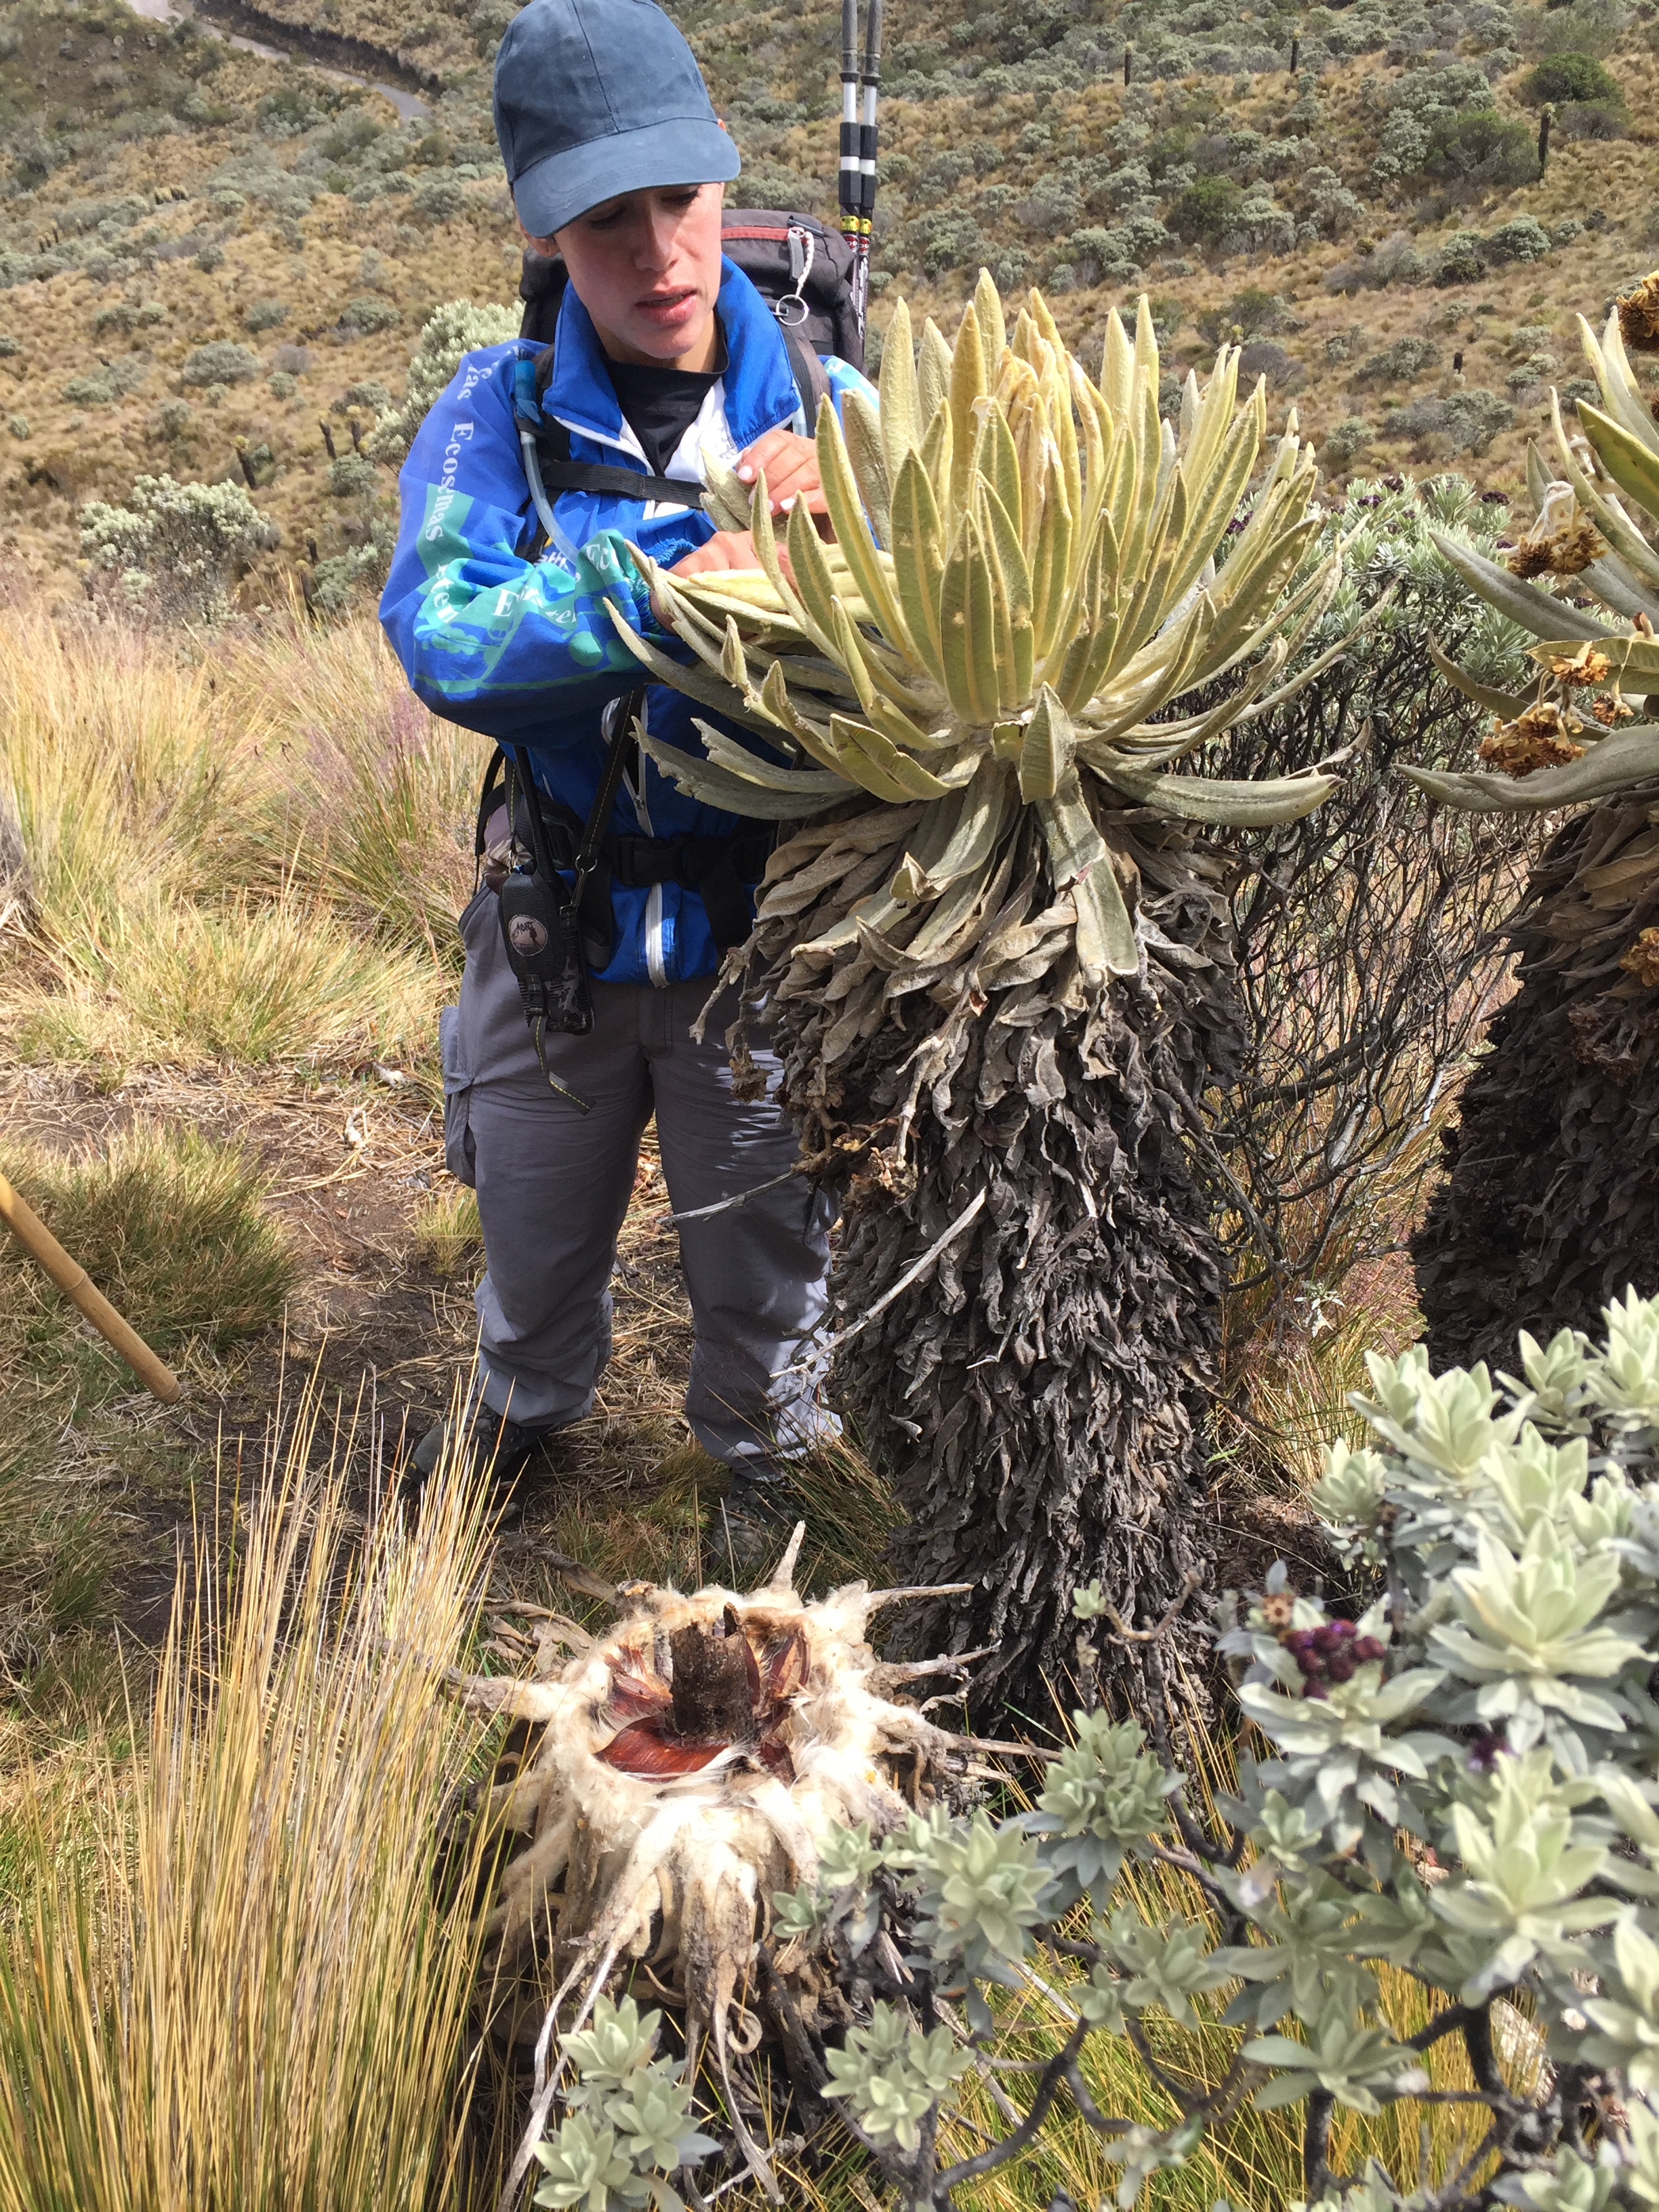 A guide explains a strange, furry tree that is only 4 feet tall. The trunk is covered in what appears to be dirty cotton and blooms into a large flower at the top. The flowers petals are also furry, and a hay-colored yellow.